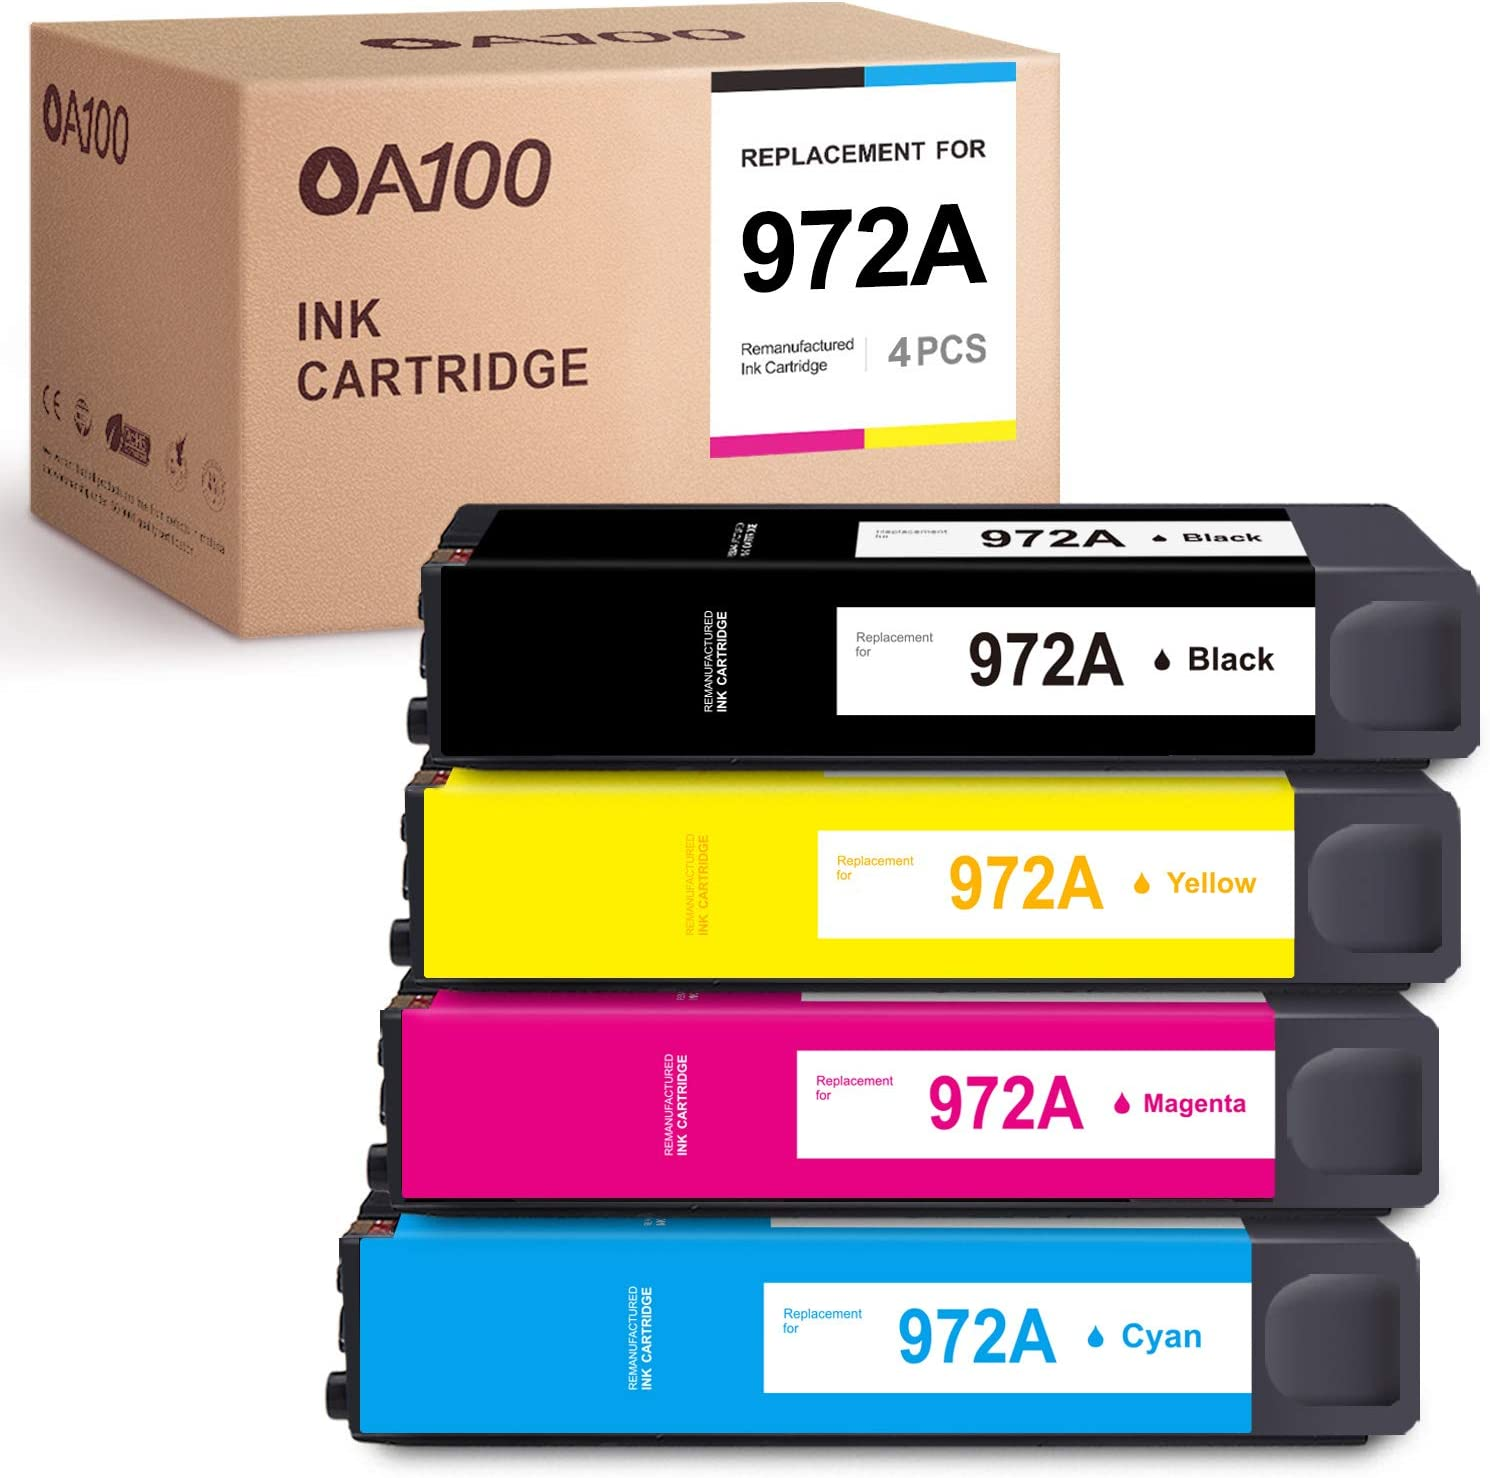 OA100 Remanufactured Ink Cartridges Replacement for HP 972A 972X 972 A for PageWide Pro 452dn 452dw 552dw MFP 477dw 577dw (Black, Cyan, Magenta, Yellow, 4-Pack)